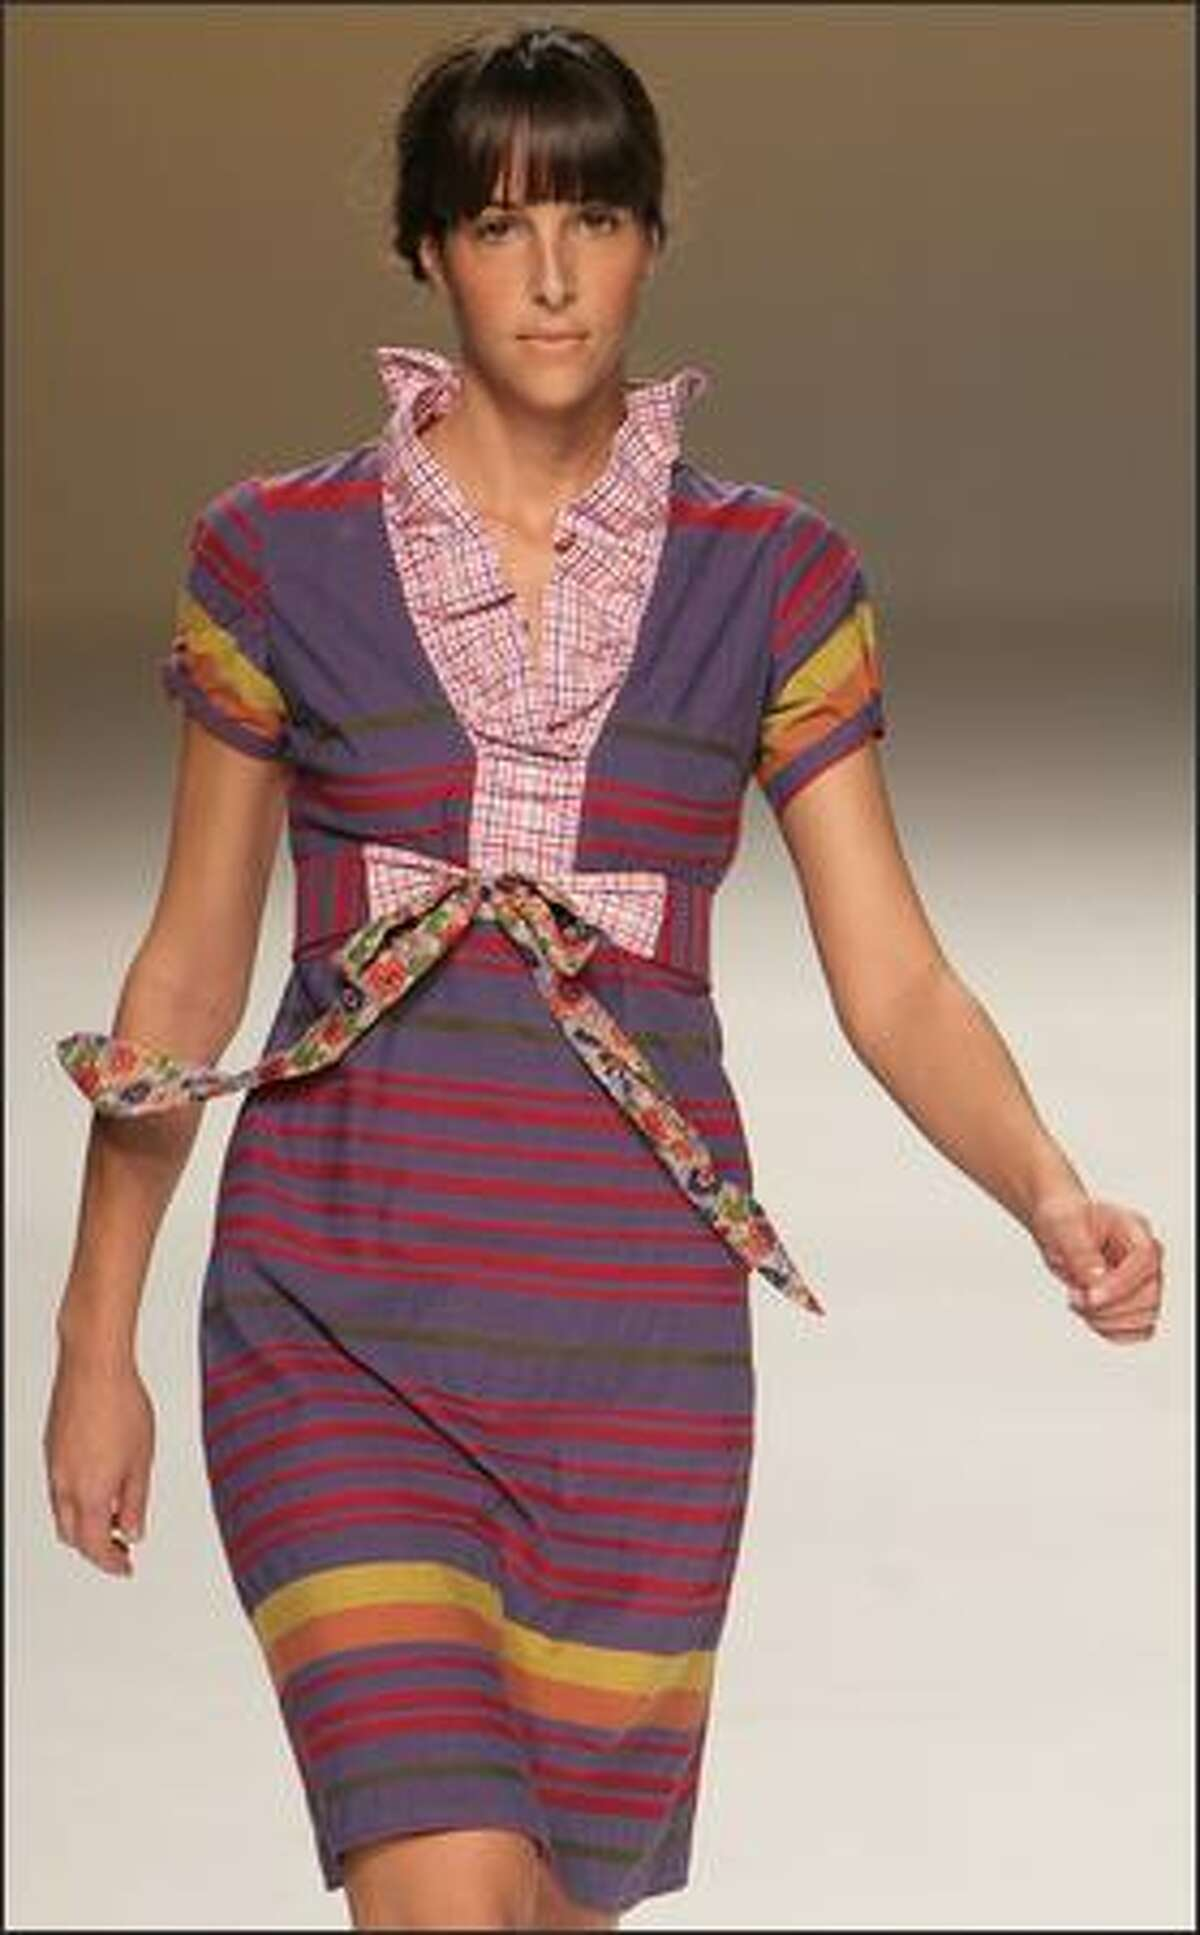 A model shows an outfit by Portuguese designer Anabel Baldaque.